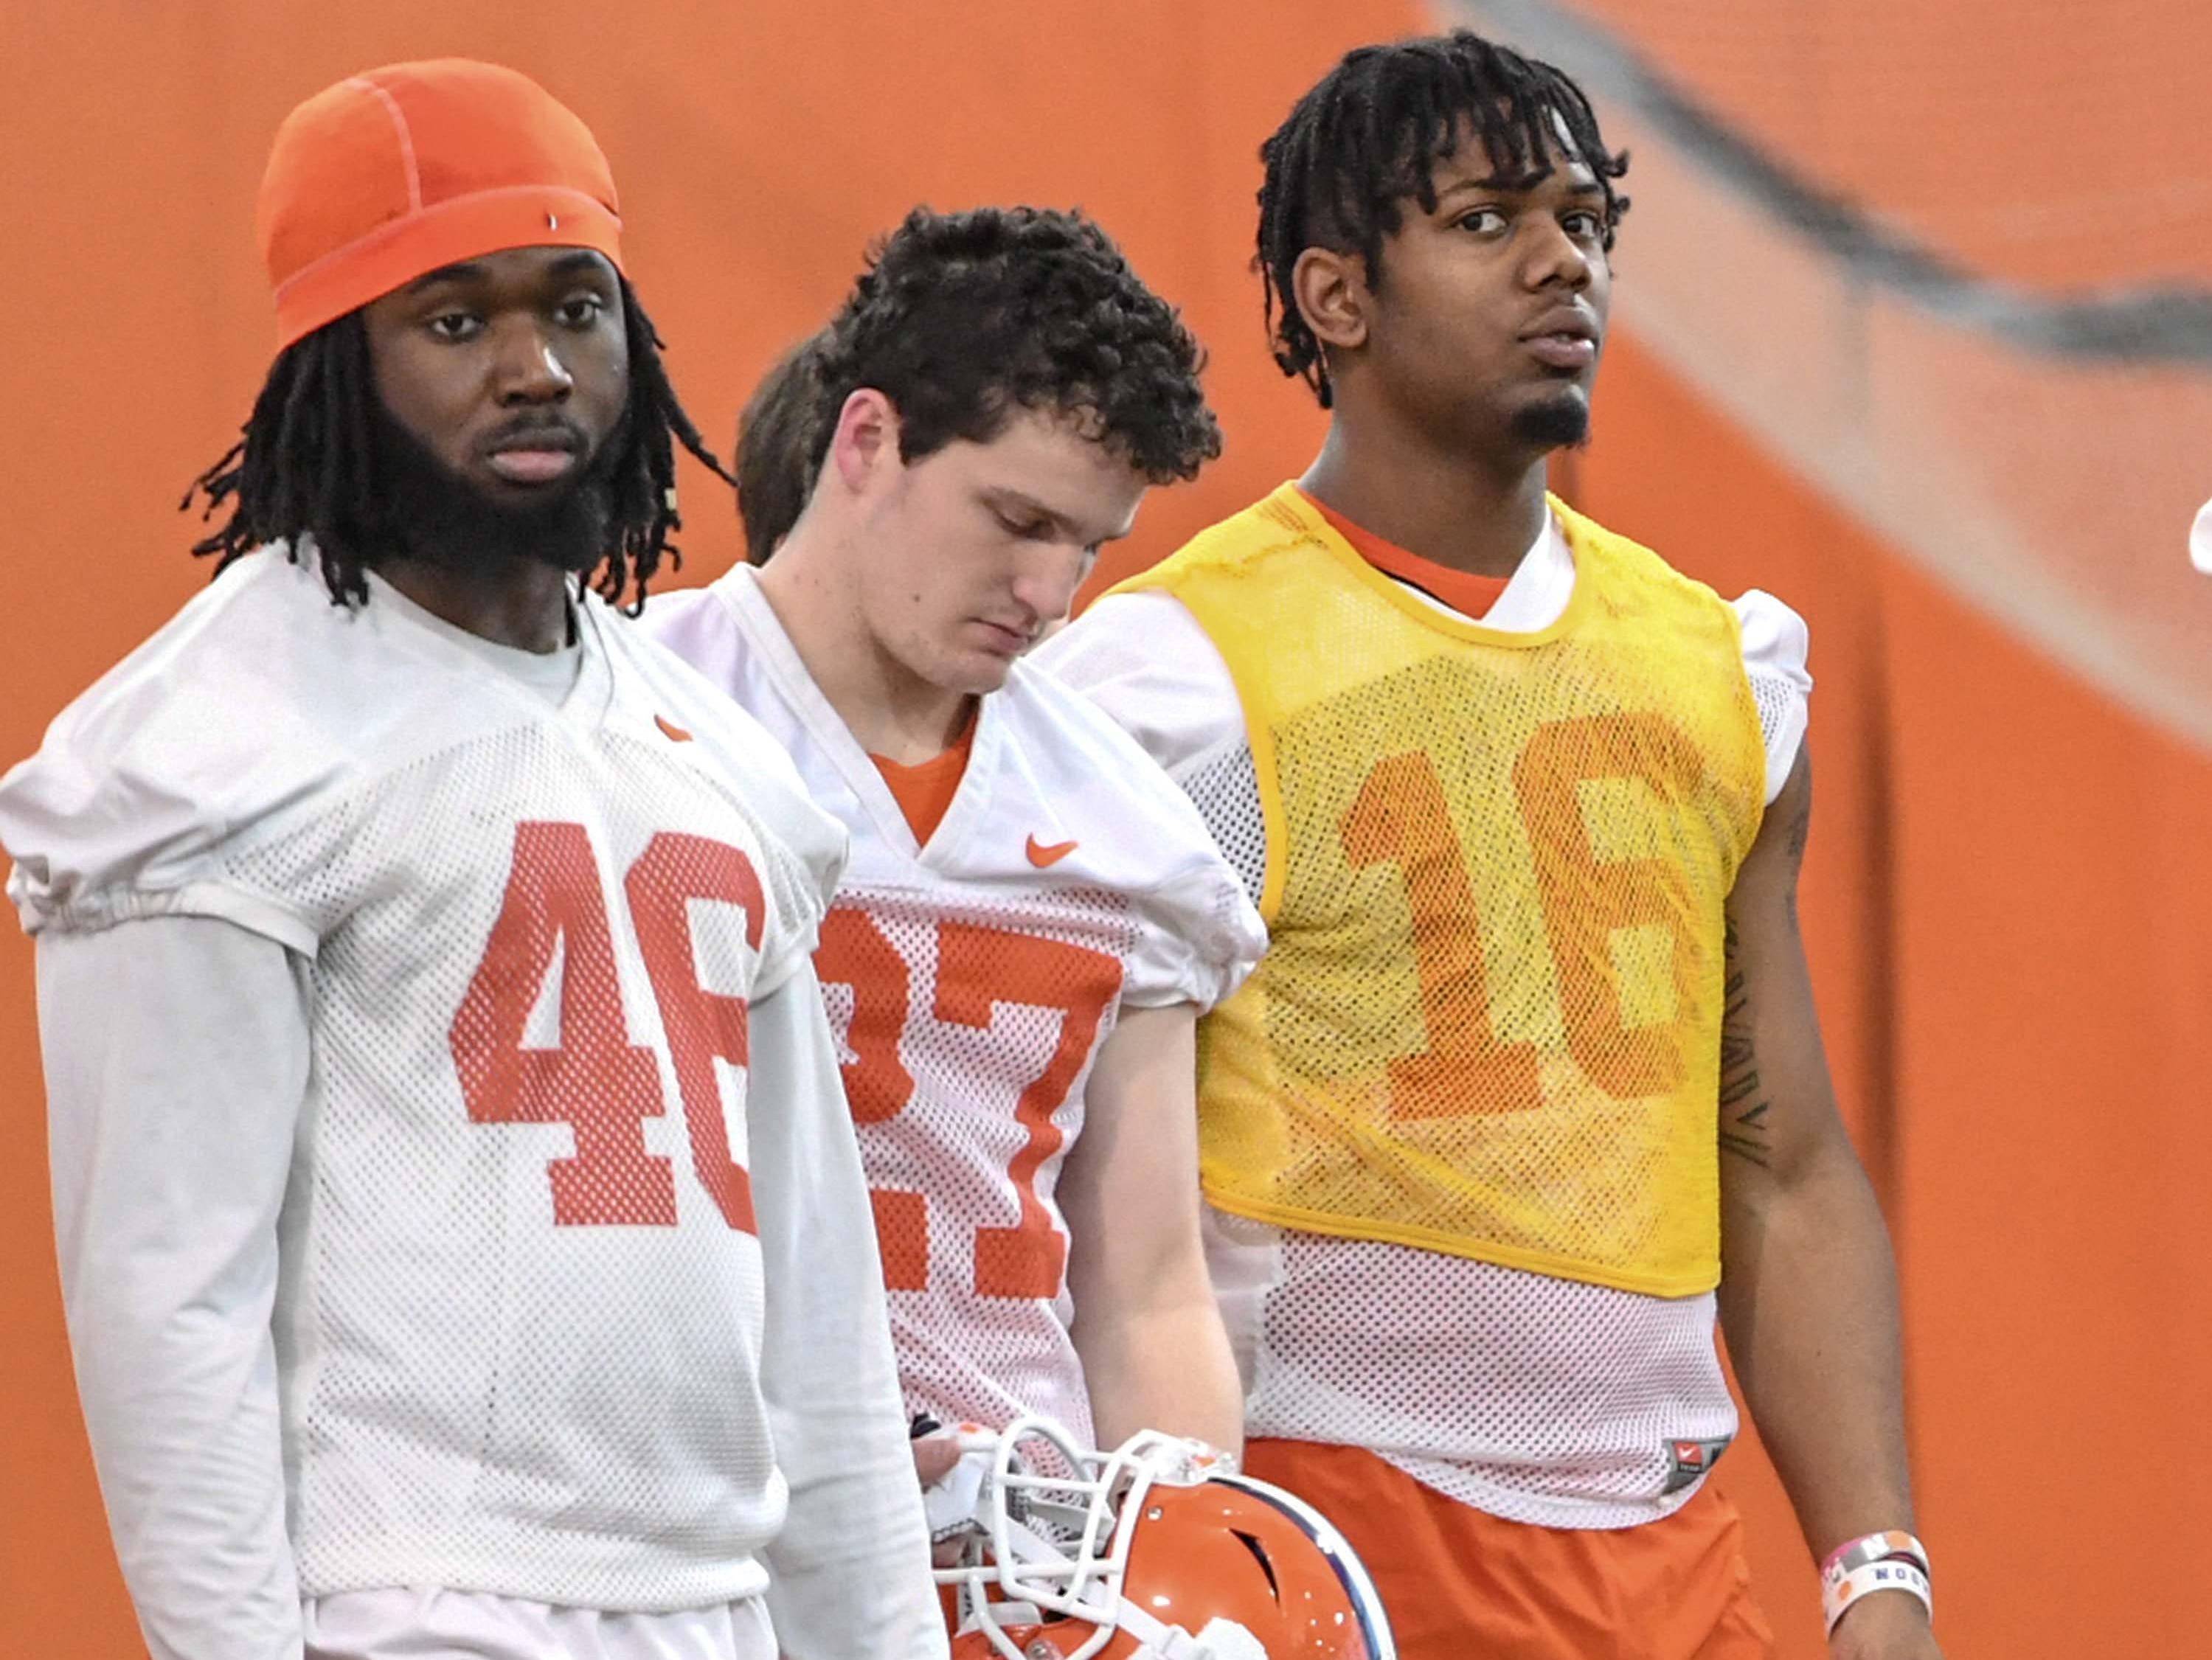 Clemson linebacker John Boyd (46), defensive back Carson Donnelly (27) and defensive back Ray Thornton III (16) during the first practice at the Clemson Indoor Practice Facility in Clemson Wednesday, February 27, 2019.